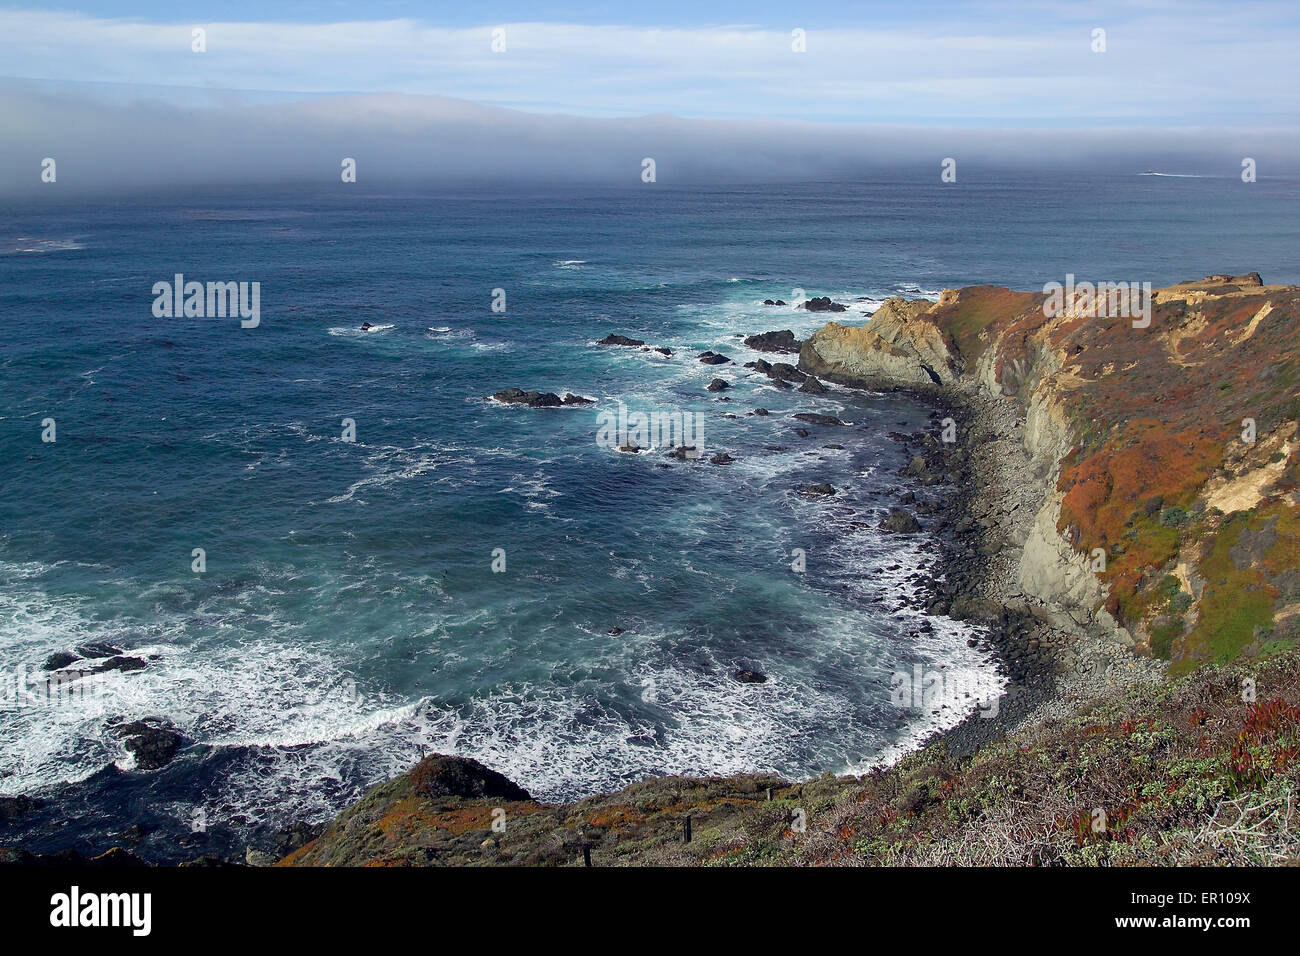 A gray fog bank rolls in over the blue Pacific Ocean along the rugged coast at Big Sur in central California, USA. - Stock Image